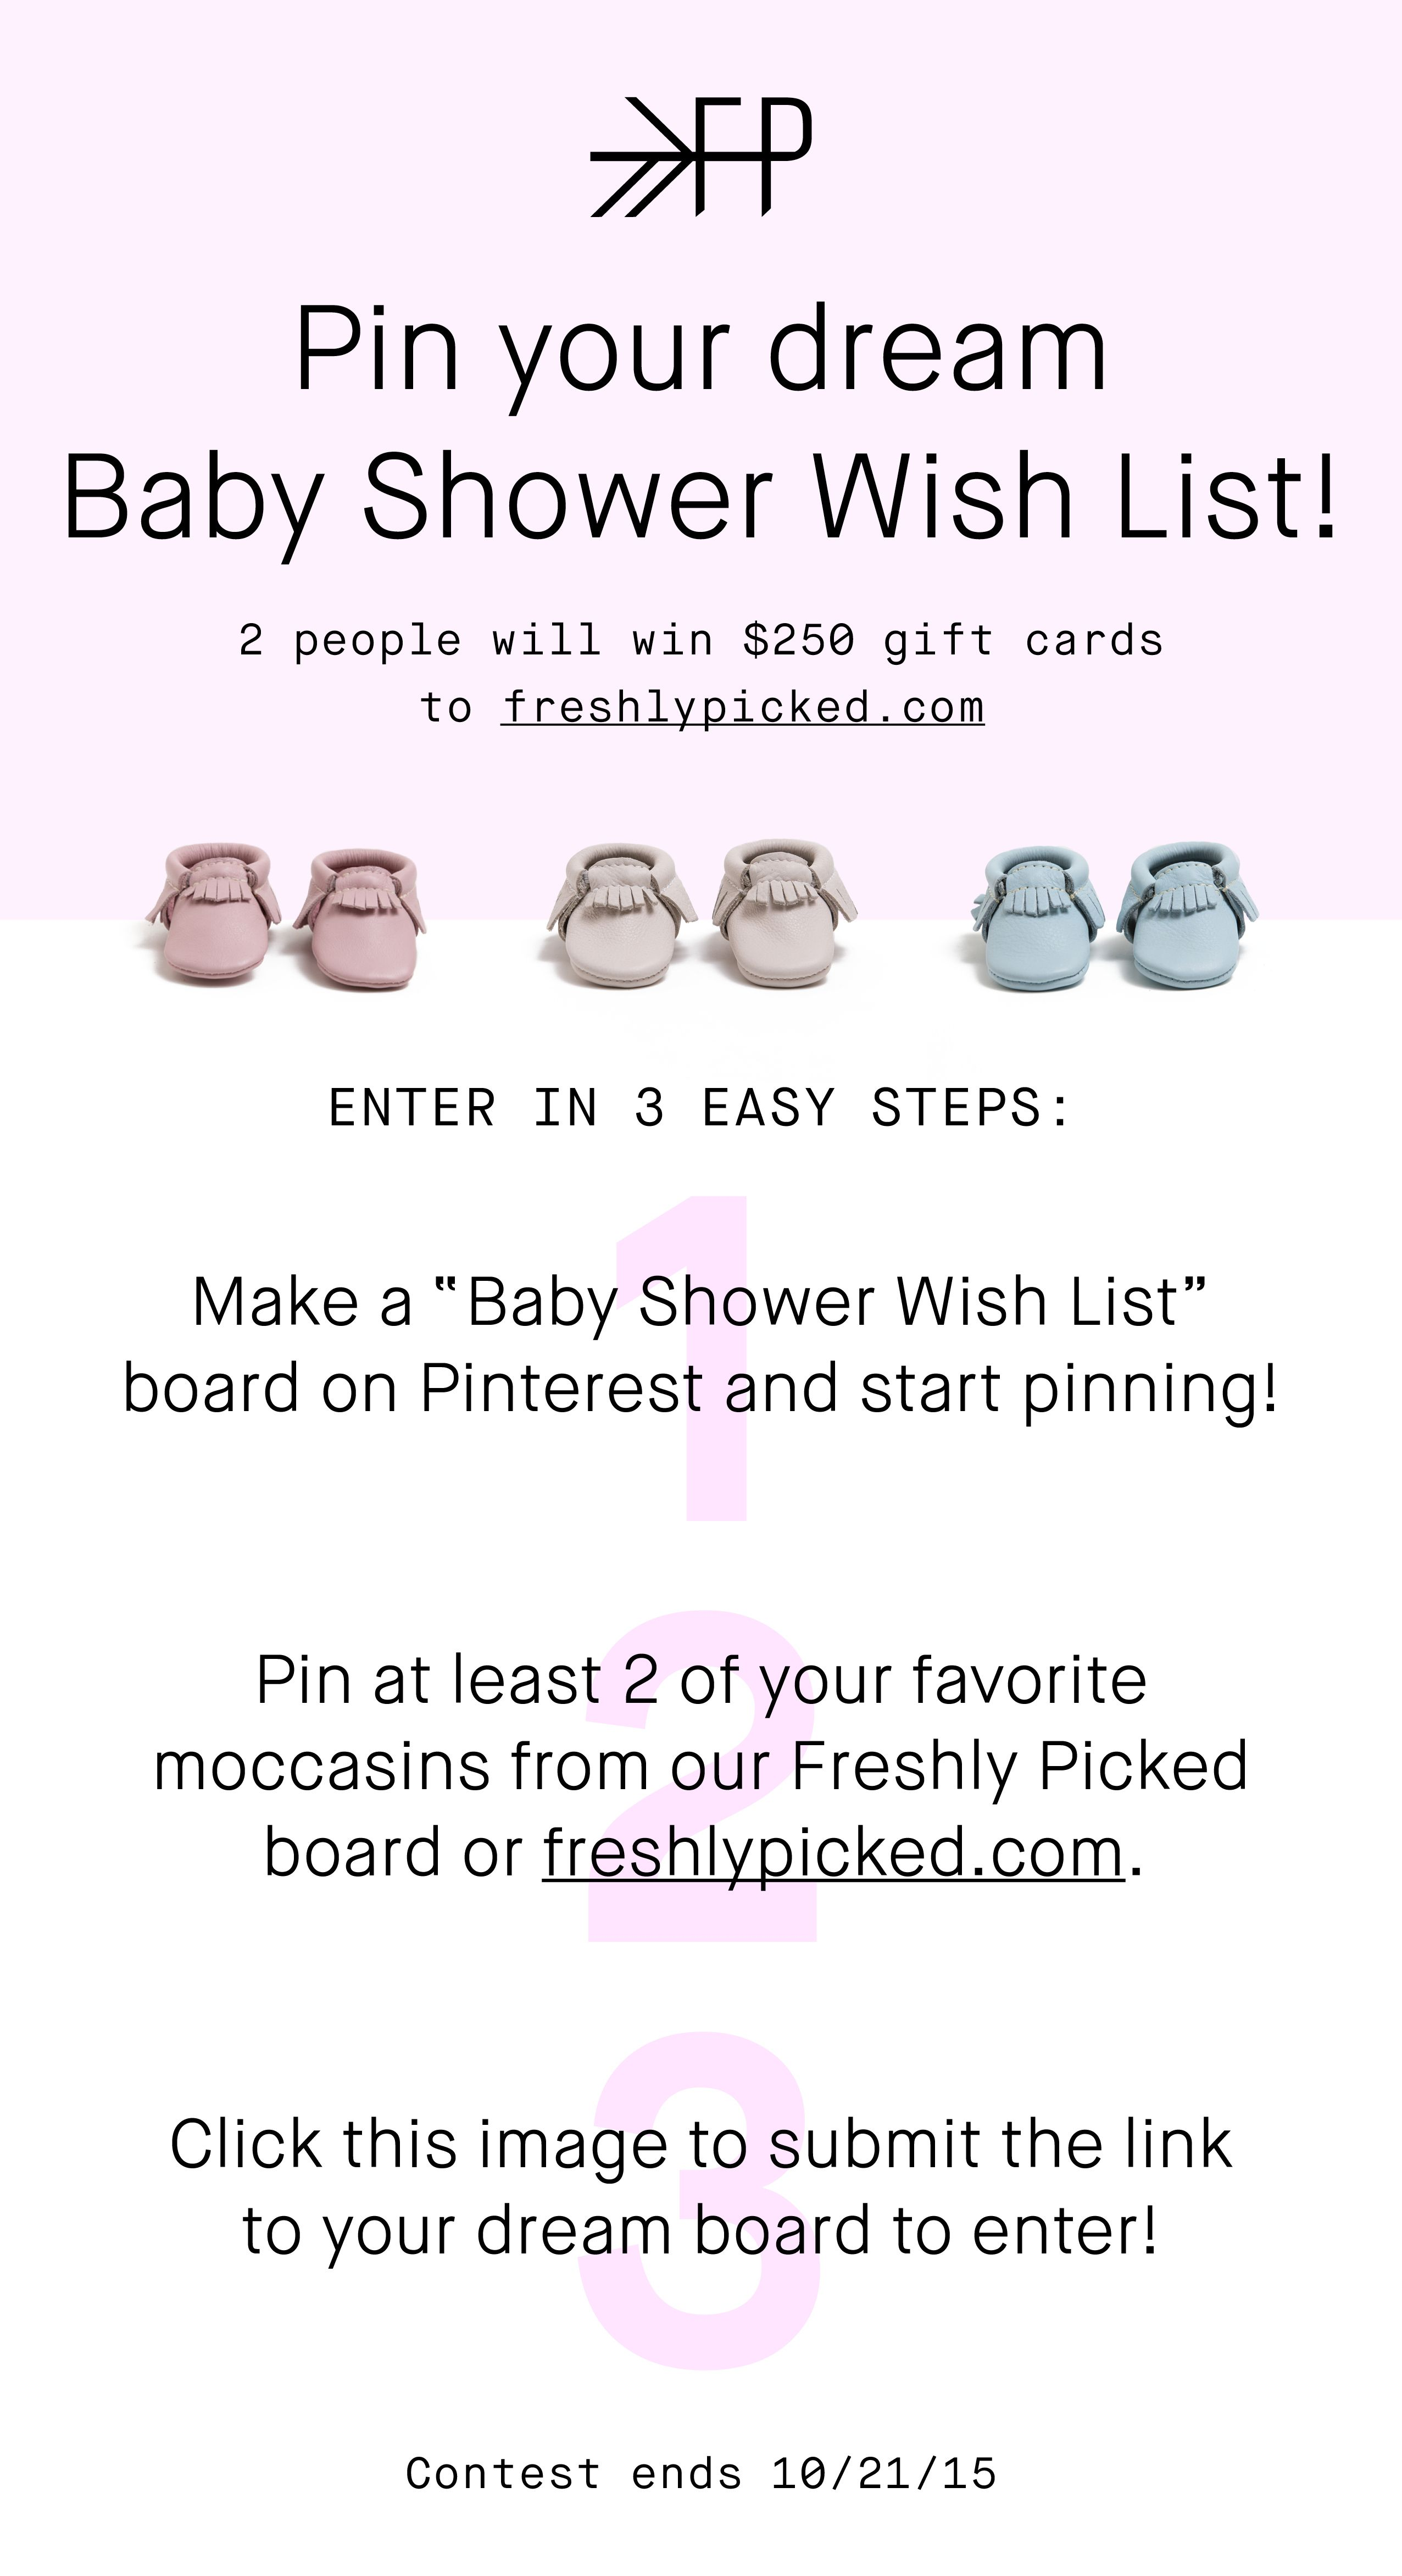 1000+ images about Baby Shower Wish List on Pinterest | Dream ...